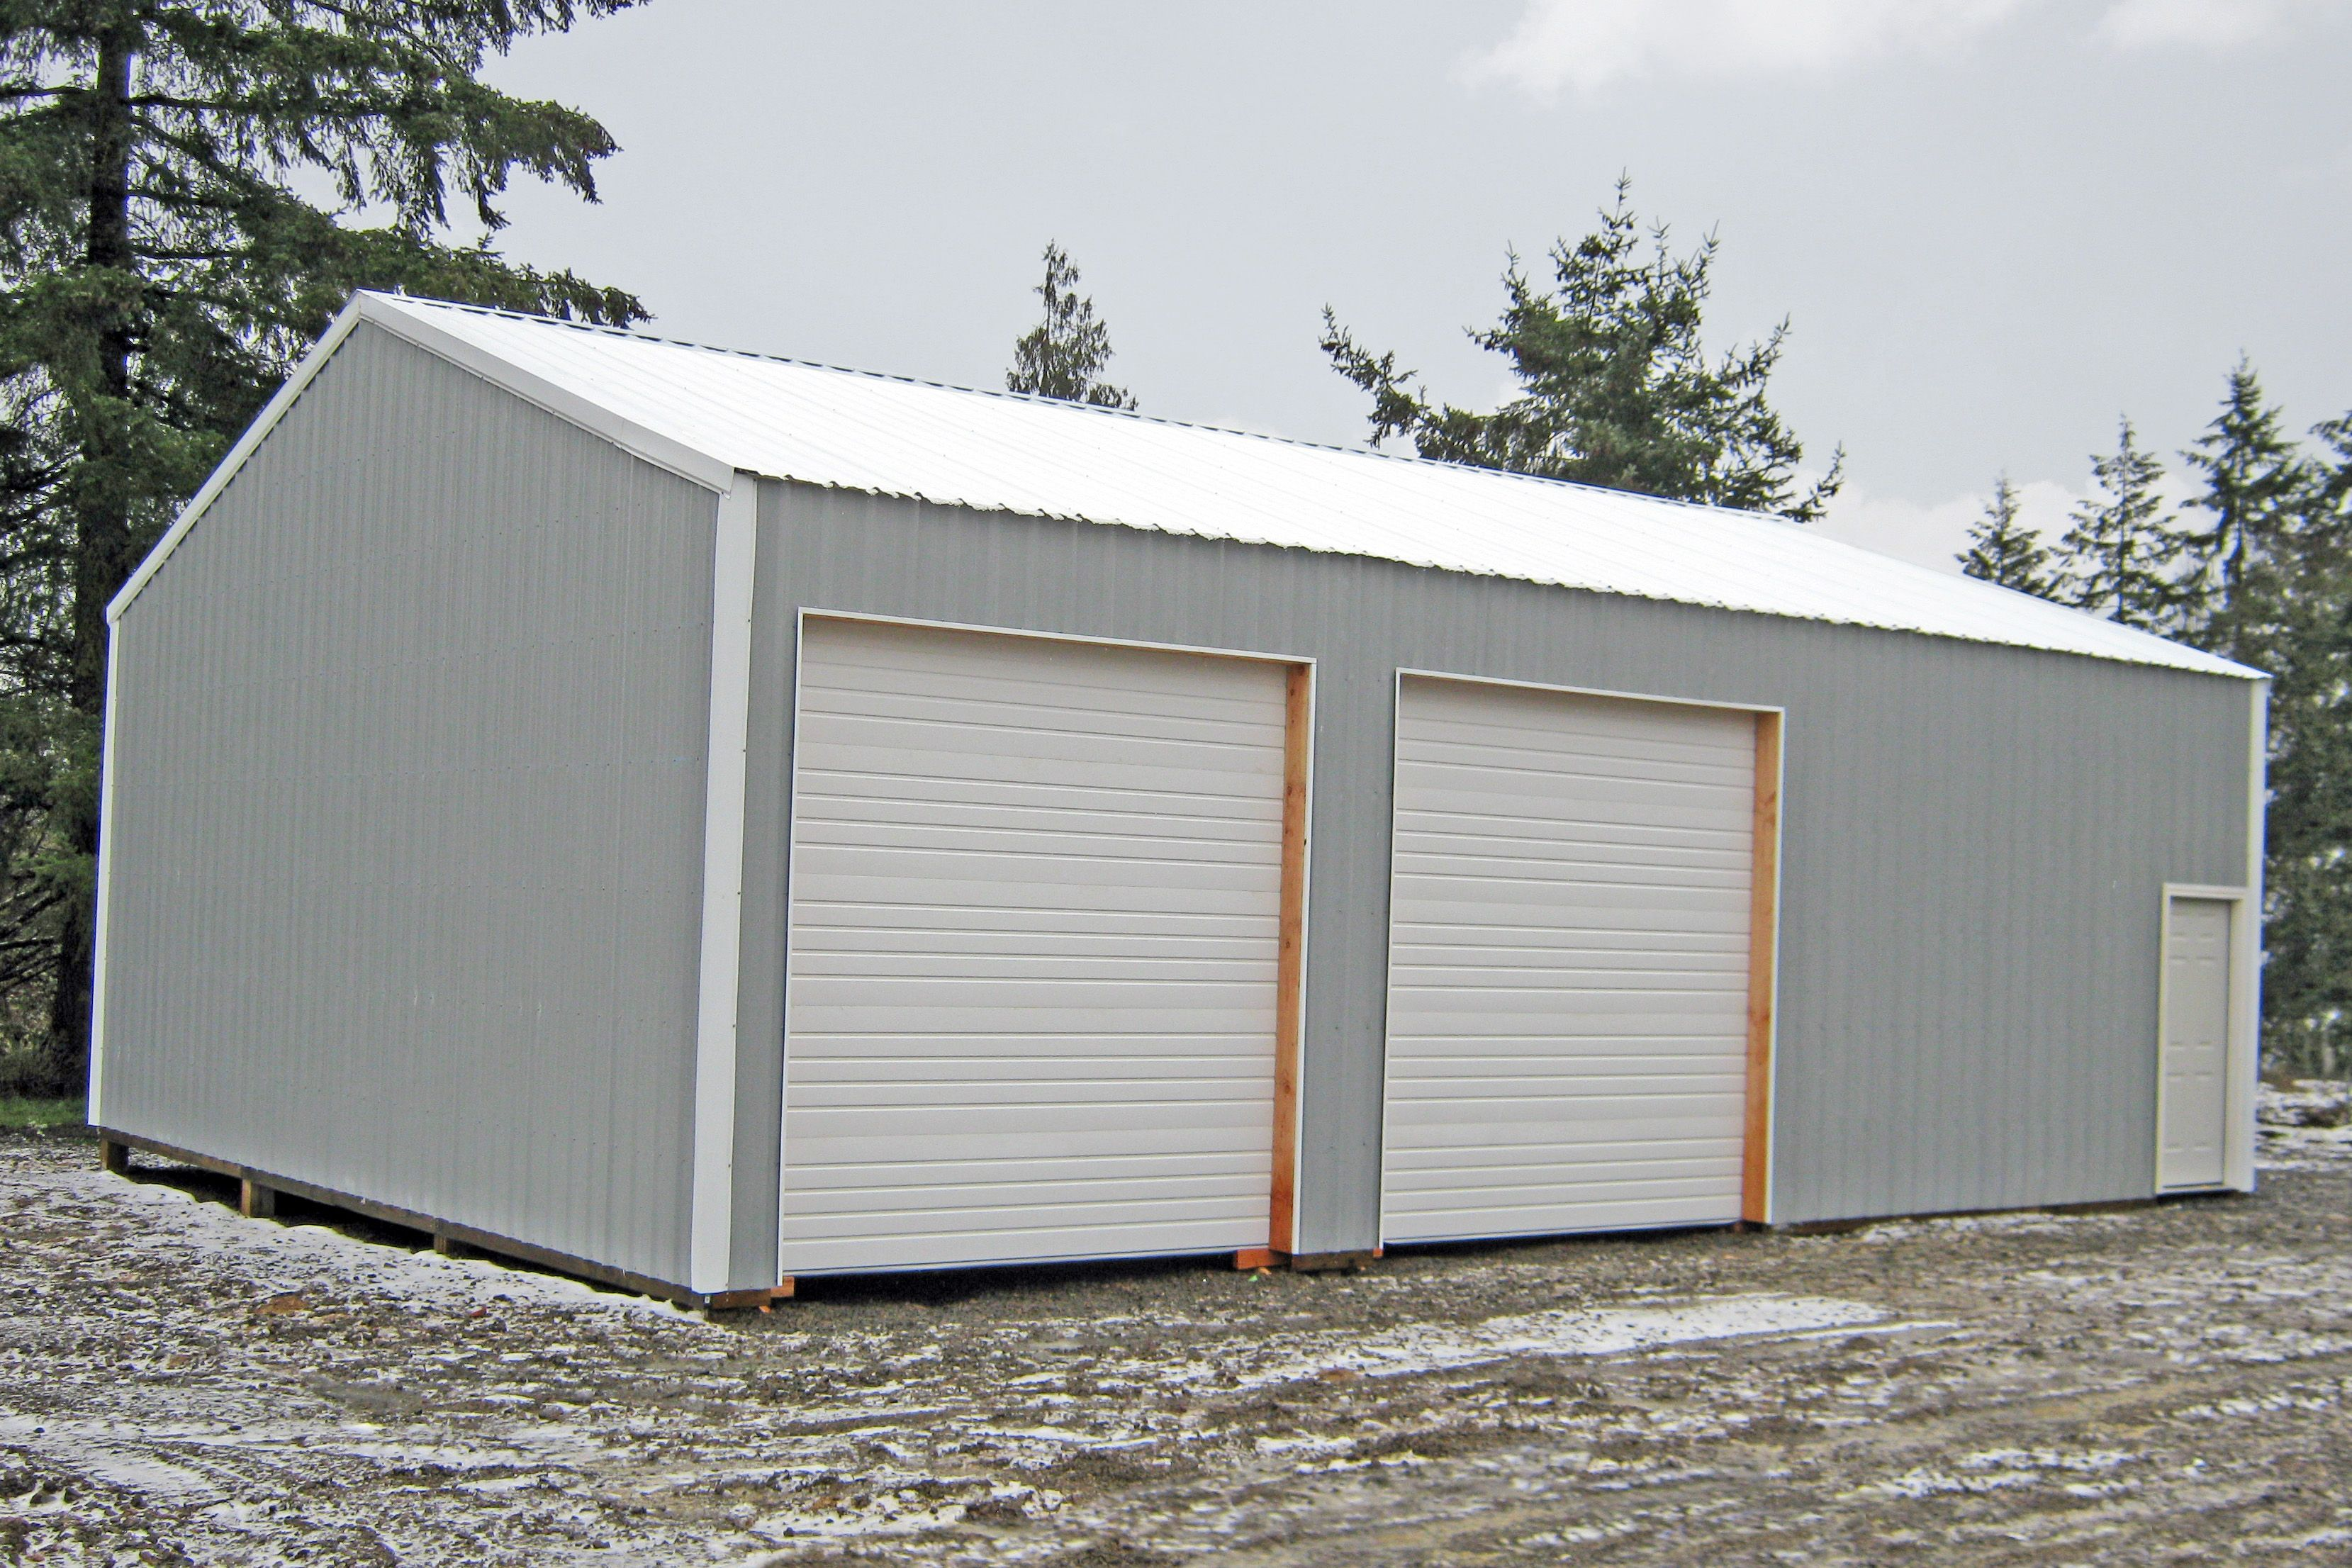 30 X 40 X 12 Residential Pole Building With Overhead Doors And Walk In Door Barns Sheds Building A Garage Garden Storage Shed